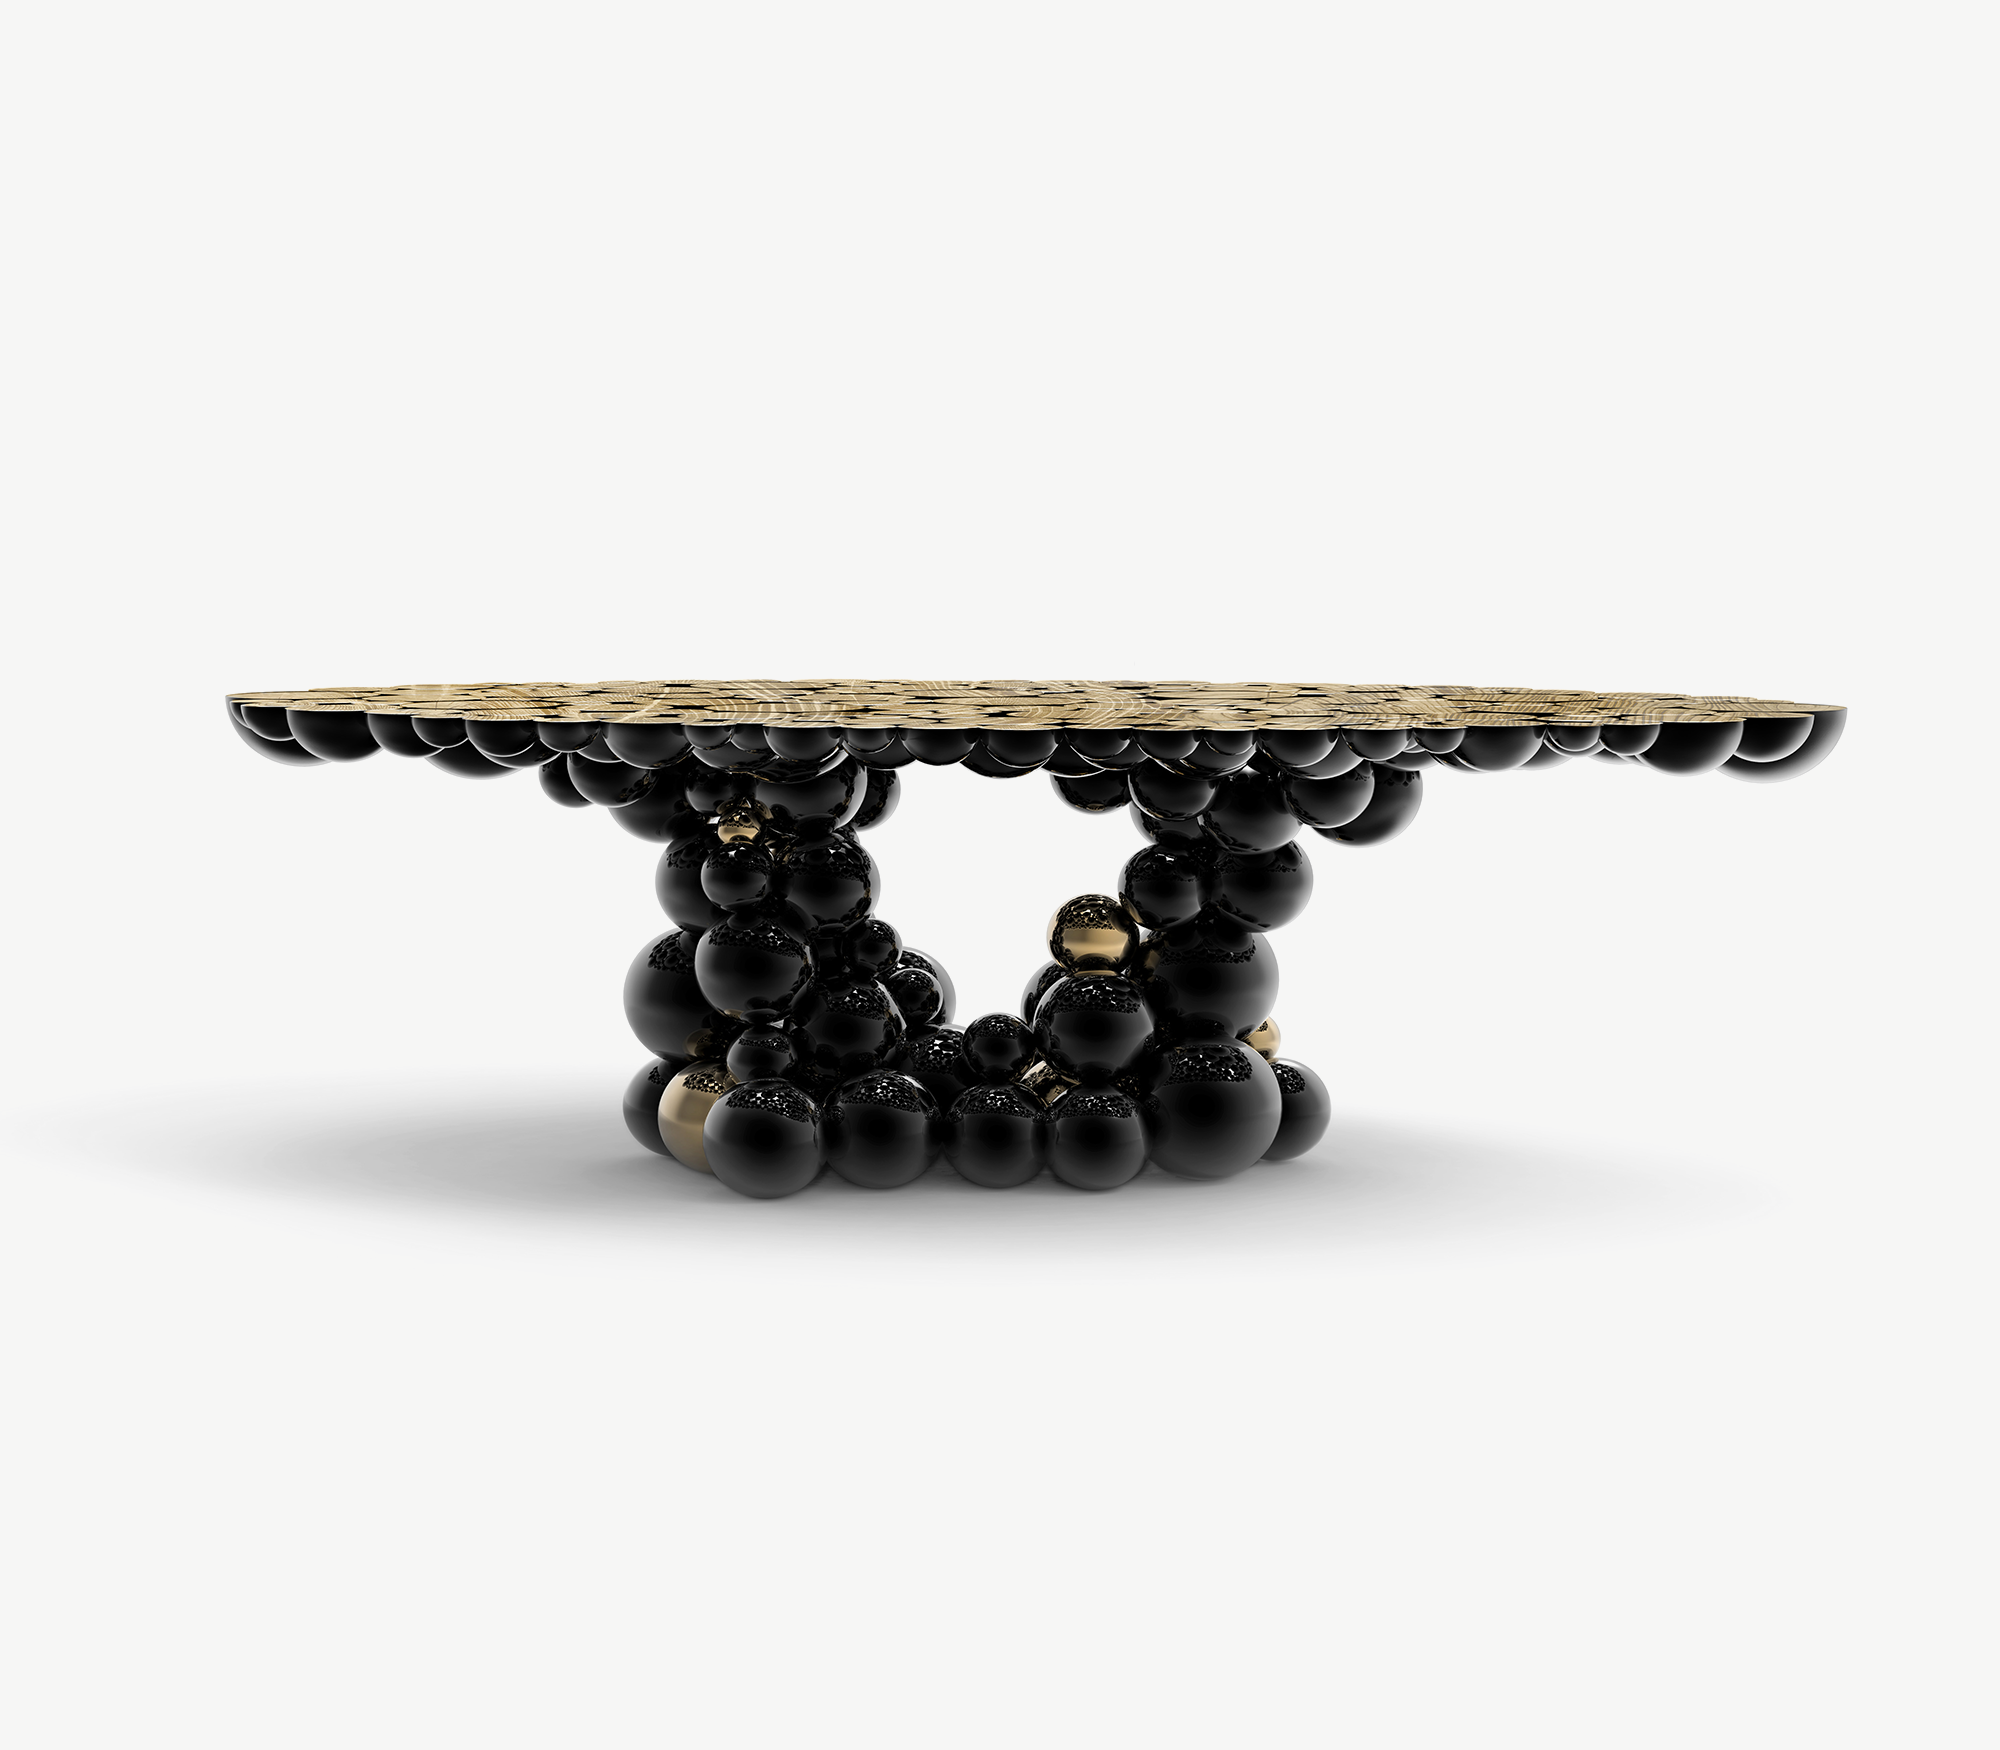 Newton Dining Table by Boca do Lobo